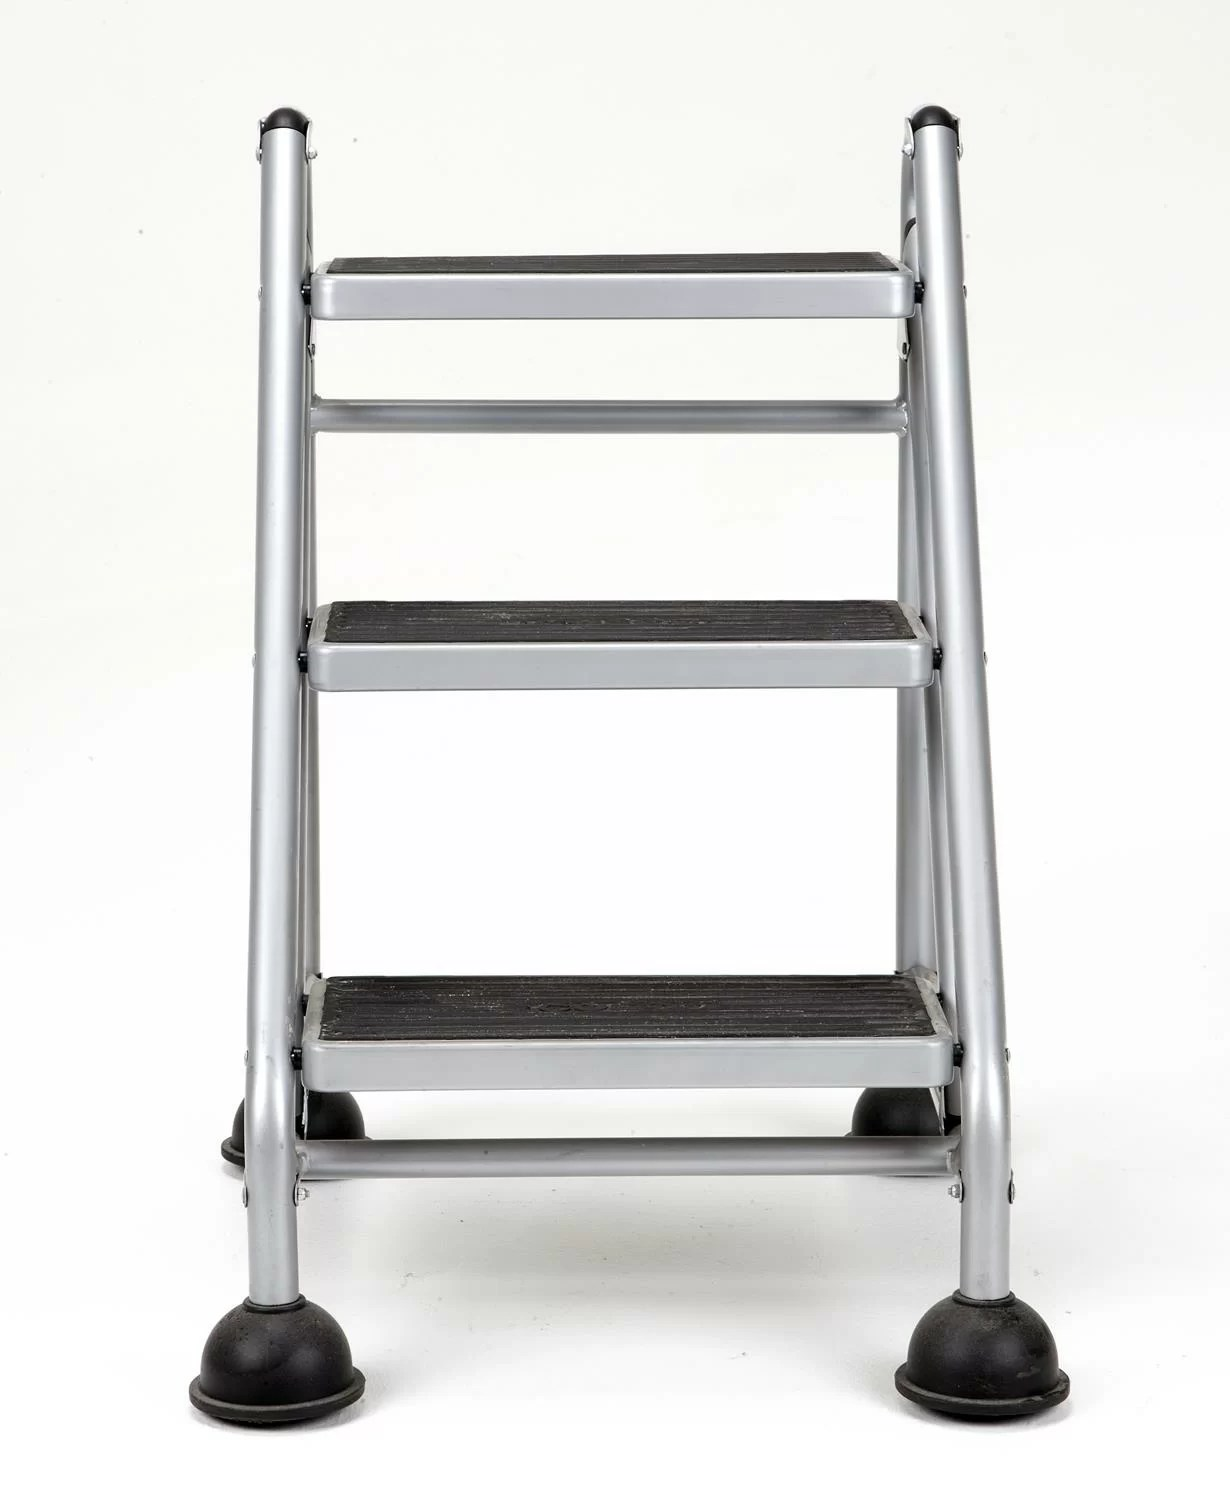 Metal Step Stool 3 Step Steel Rolling Step Stool With 300 Lb Load Capacity